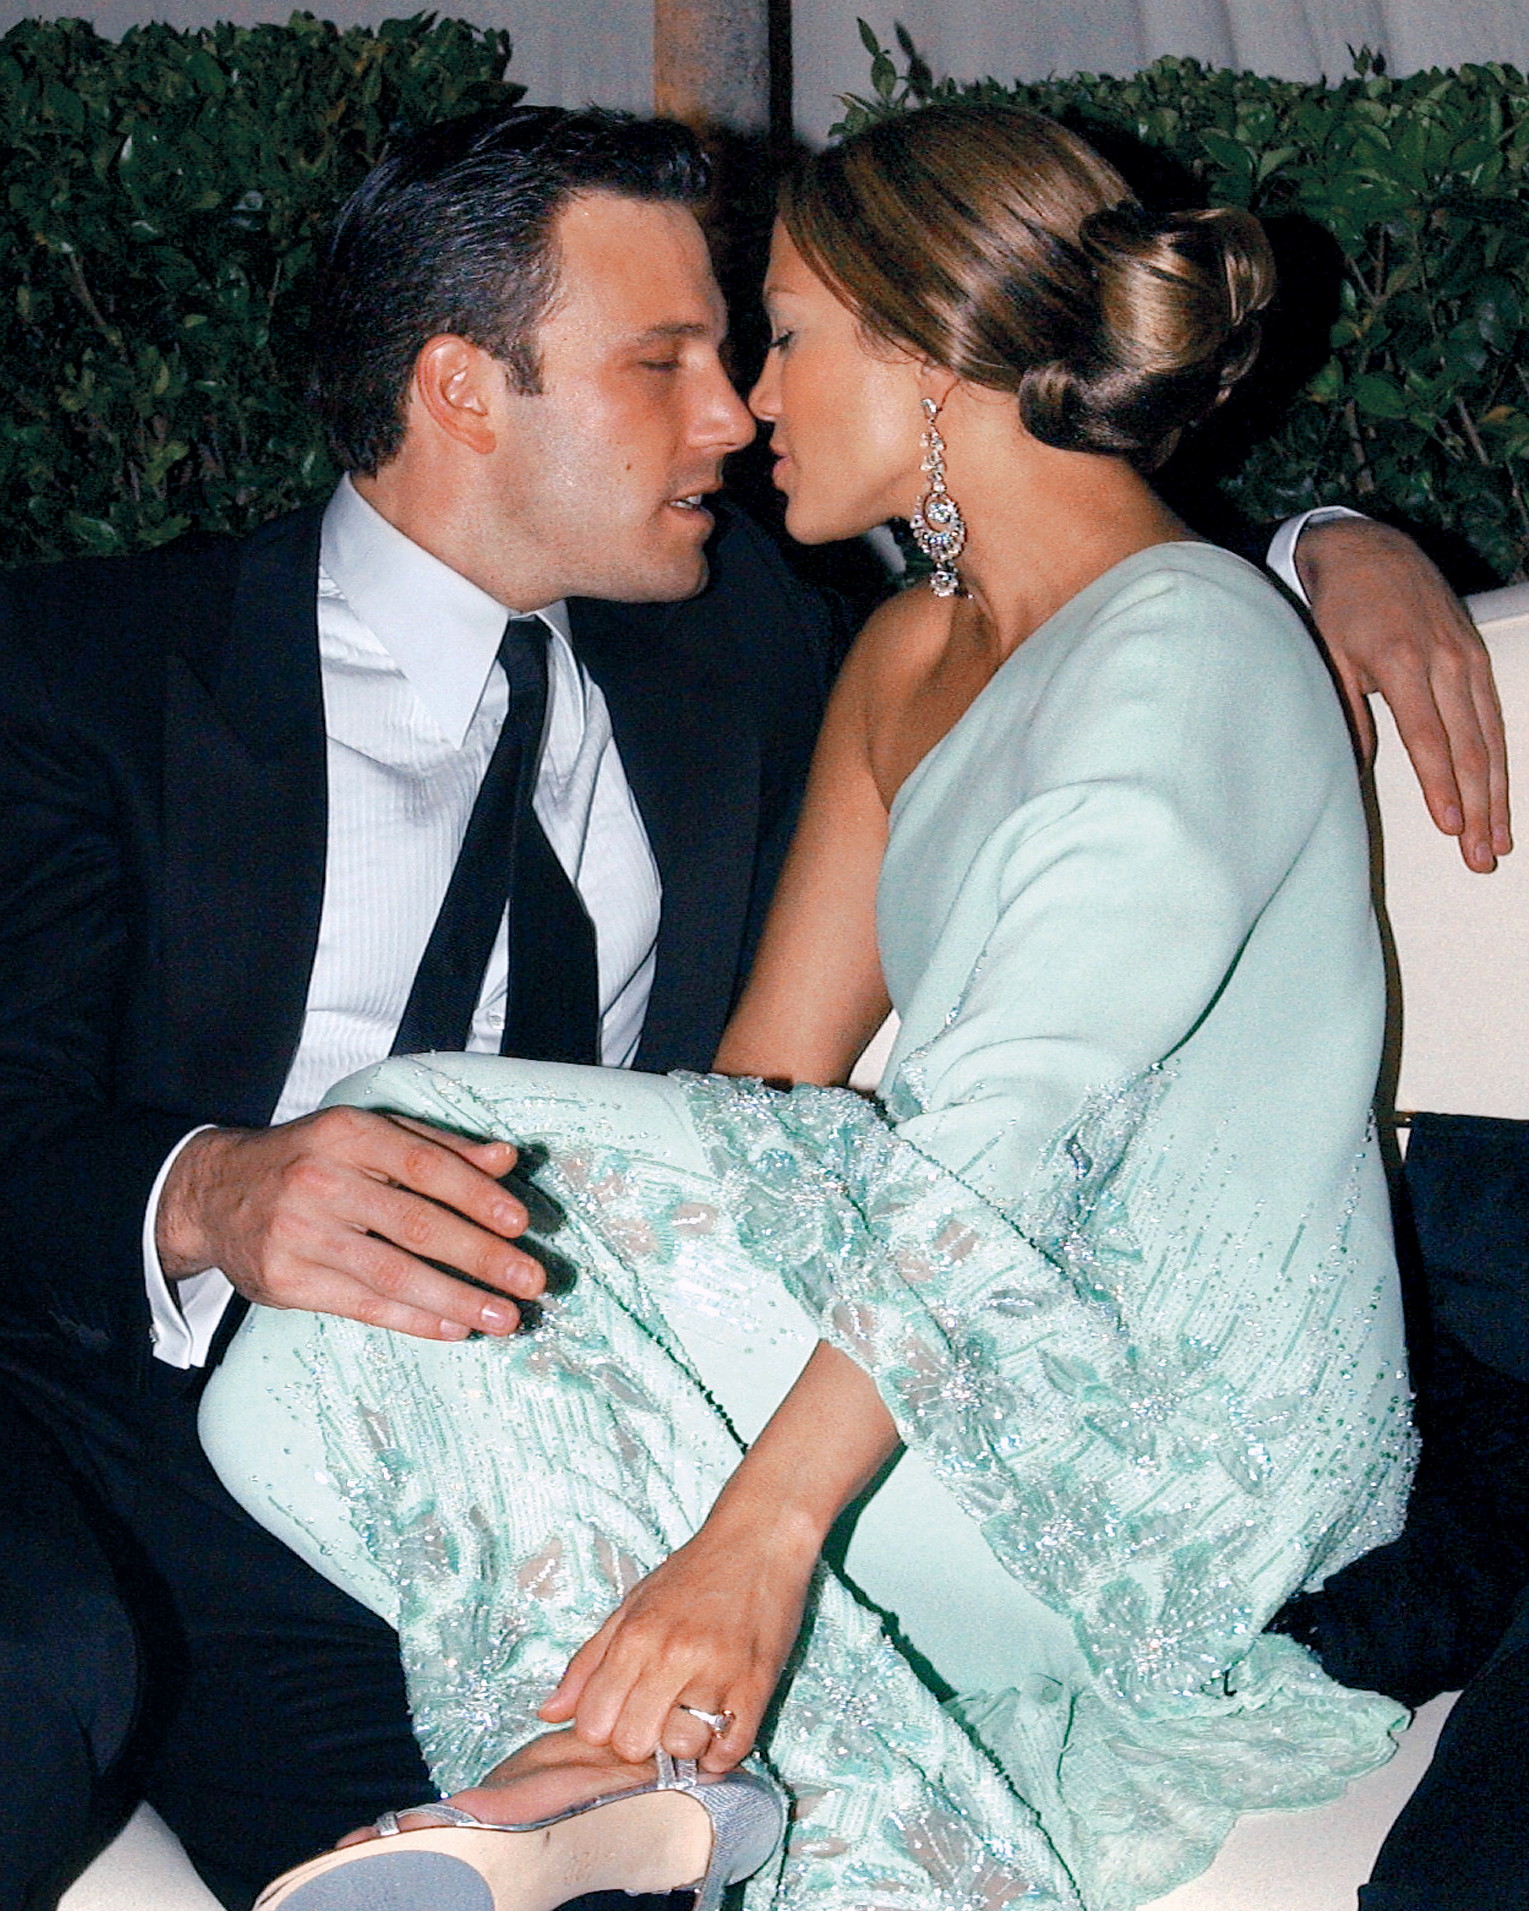 Ben Affleck and Jennifer Lopez at the 'Vanity Fair' Oscars Party Morton's, Beverly Hills, CA in March 23, 2003.